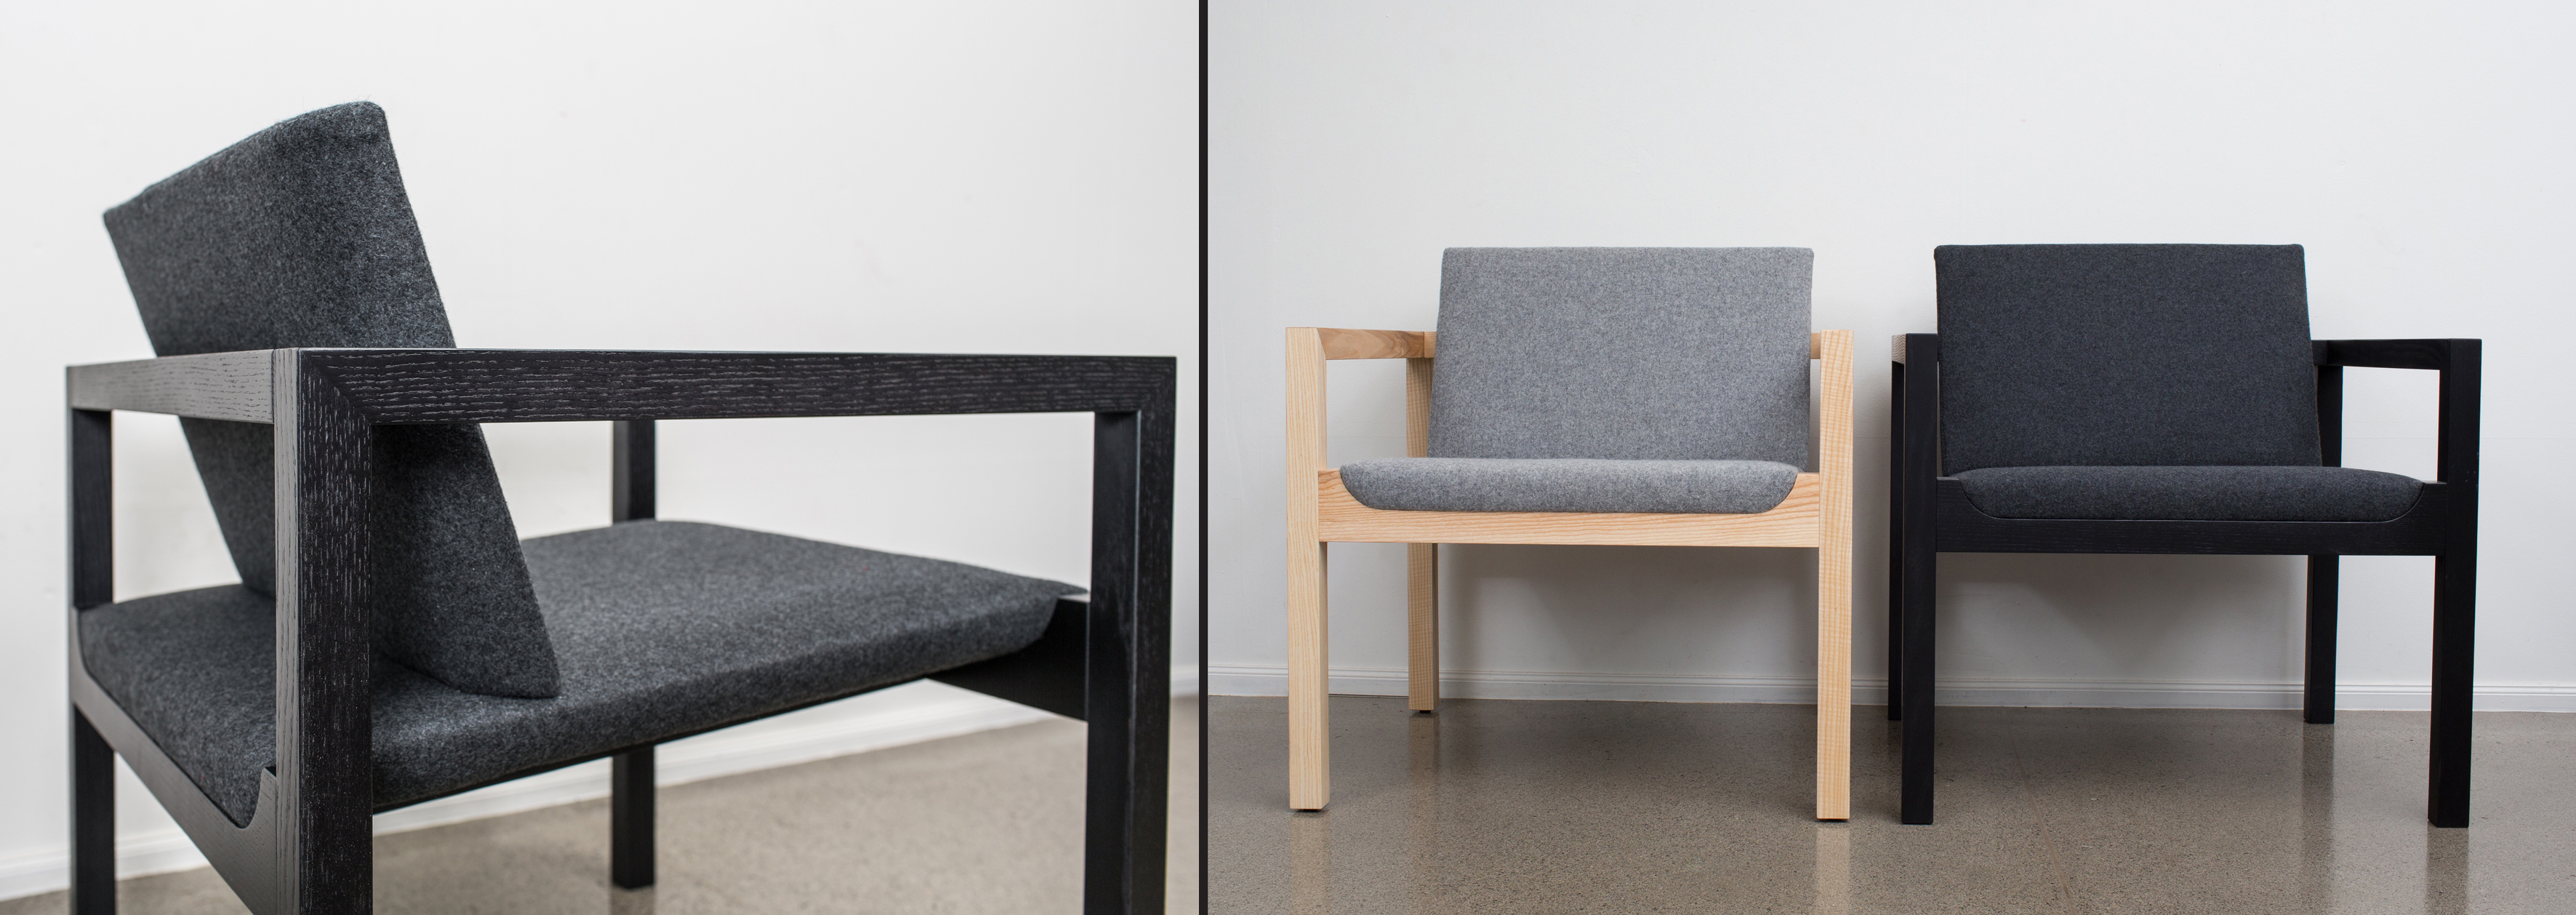 Flight: minimal, unpretentious detailing and high-quality upholstery. Photo: © The Earnest Workshop